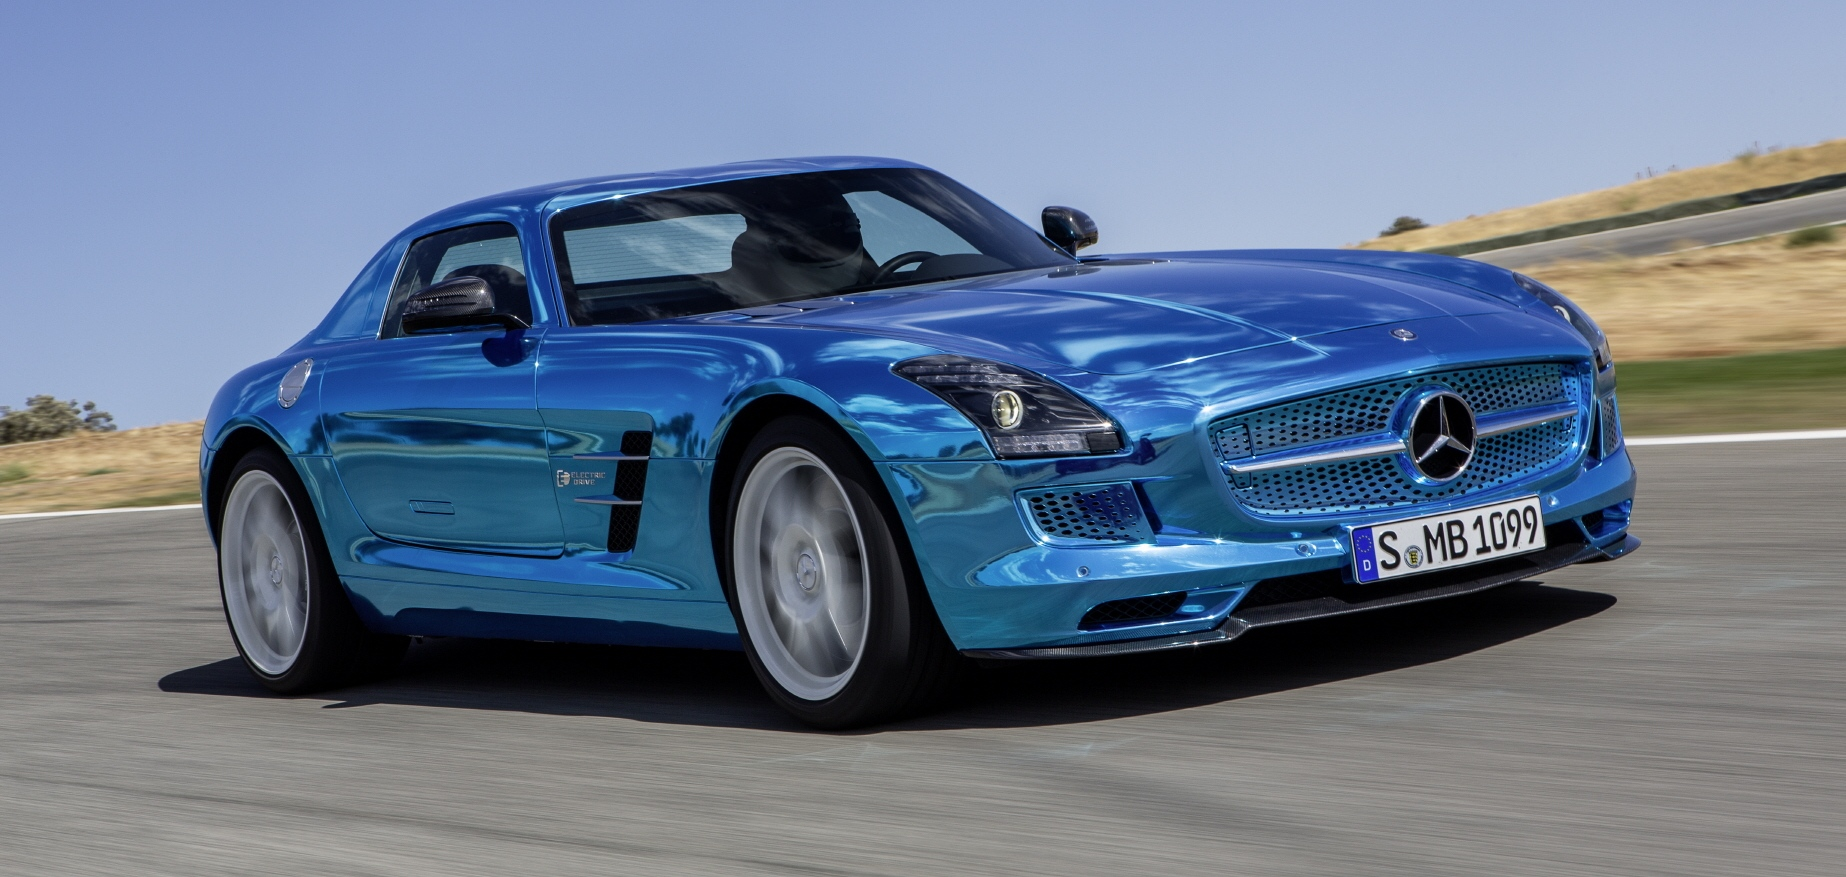 SLS AMG Electric Drive: Half Million Dollar Baby